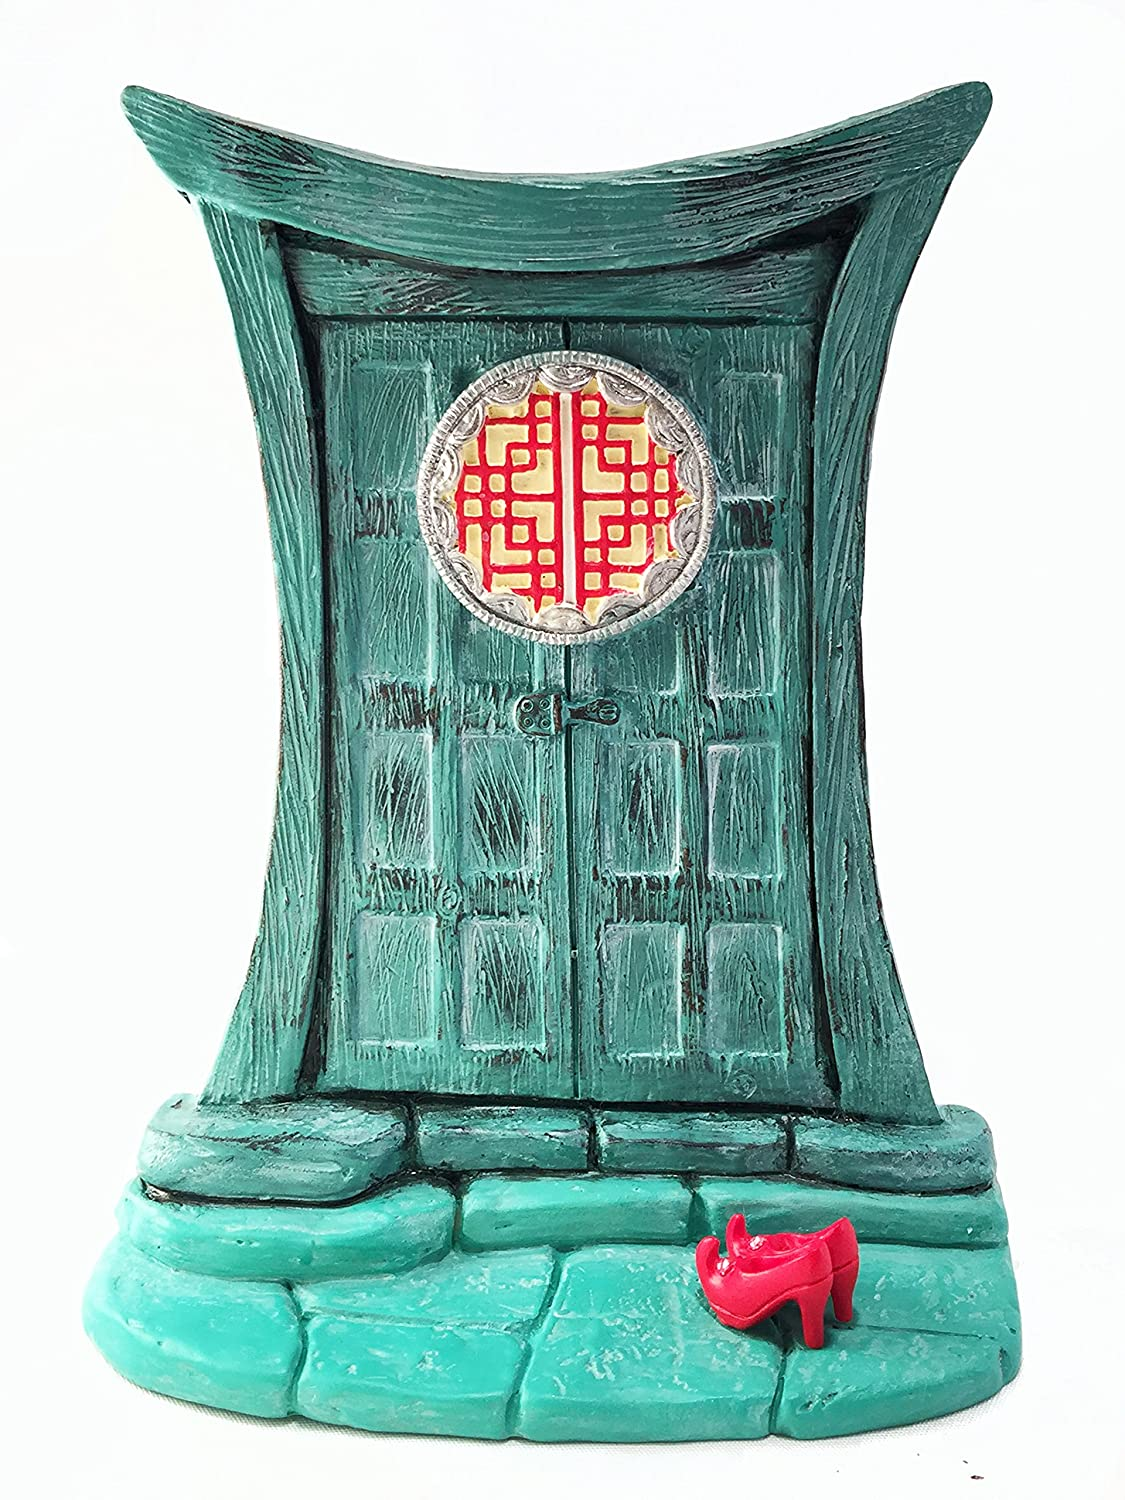 Miniature Zen Fairy Door for Miniature Garden Fairies and Gnomes - Beautiful Turquoise Asian-Style Zen Fairy Miniature Door with Removable Red Fairy Shoes GlitZGlam